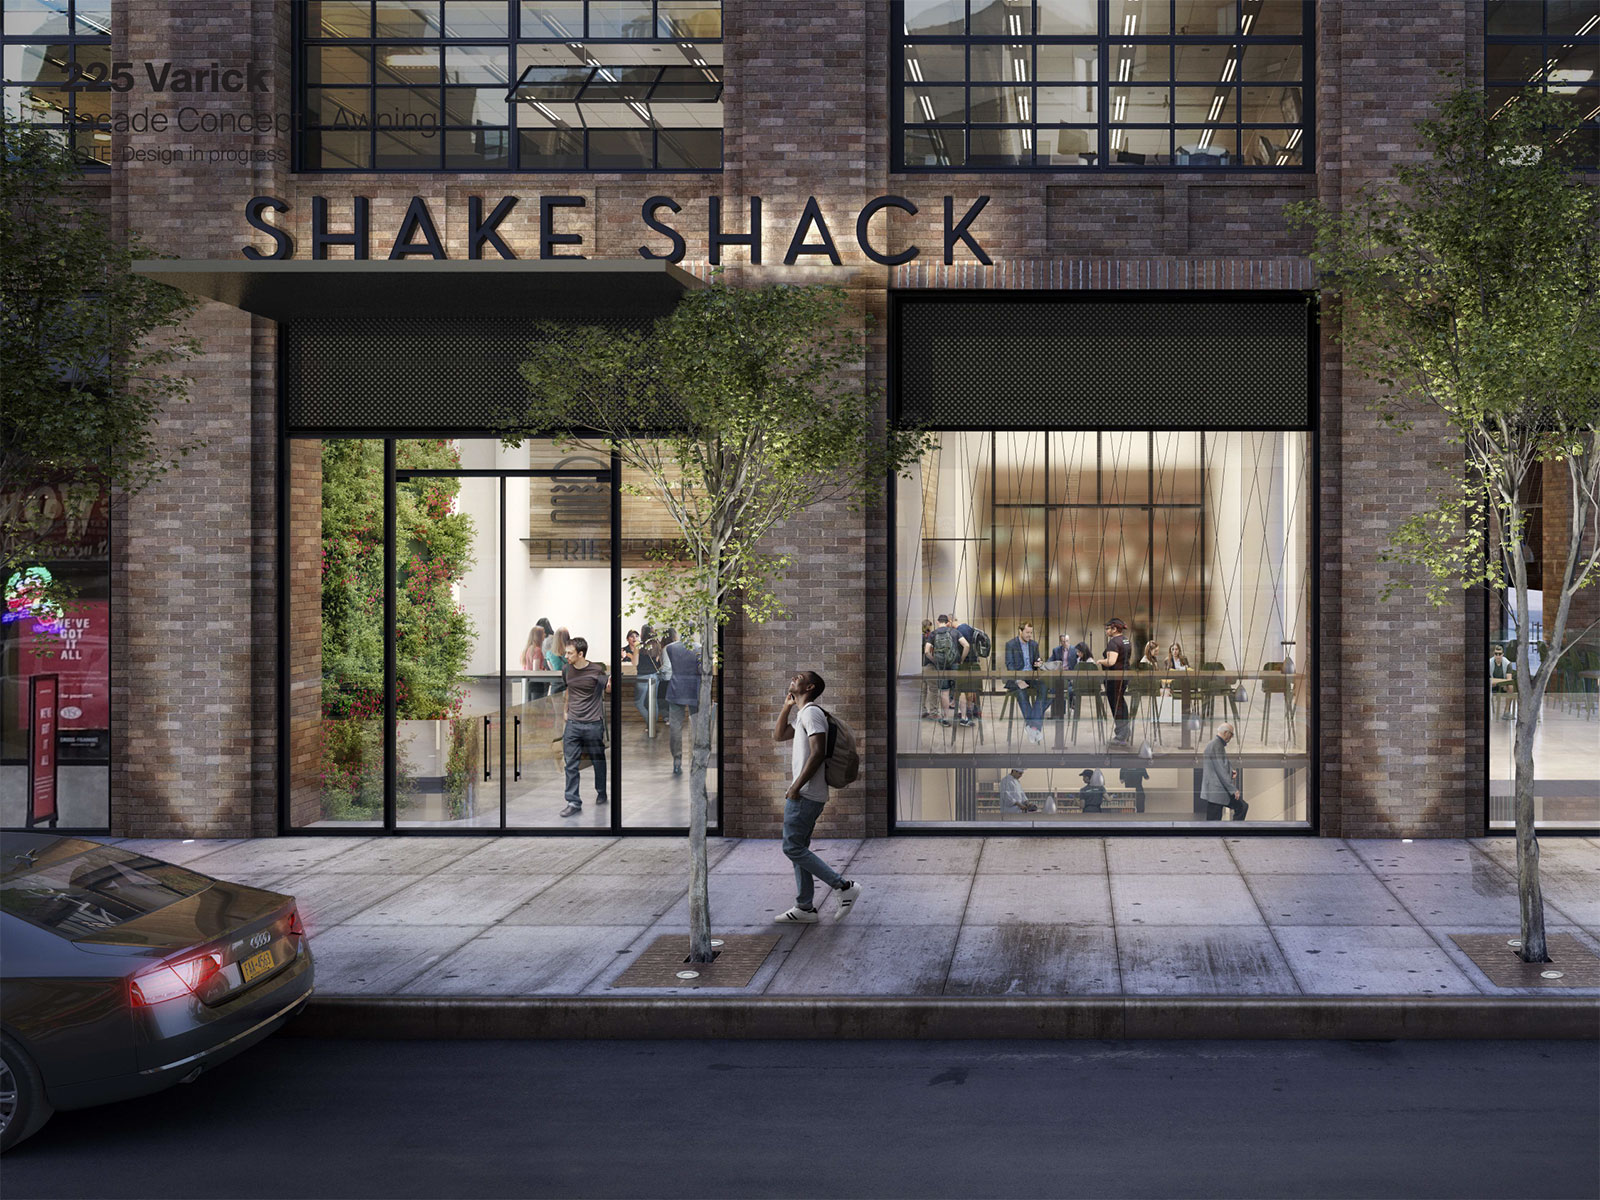 Shake Shack's (NYSE:SHAK) Hold Rating Reiterated at Cowen and Company